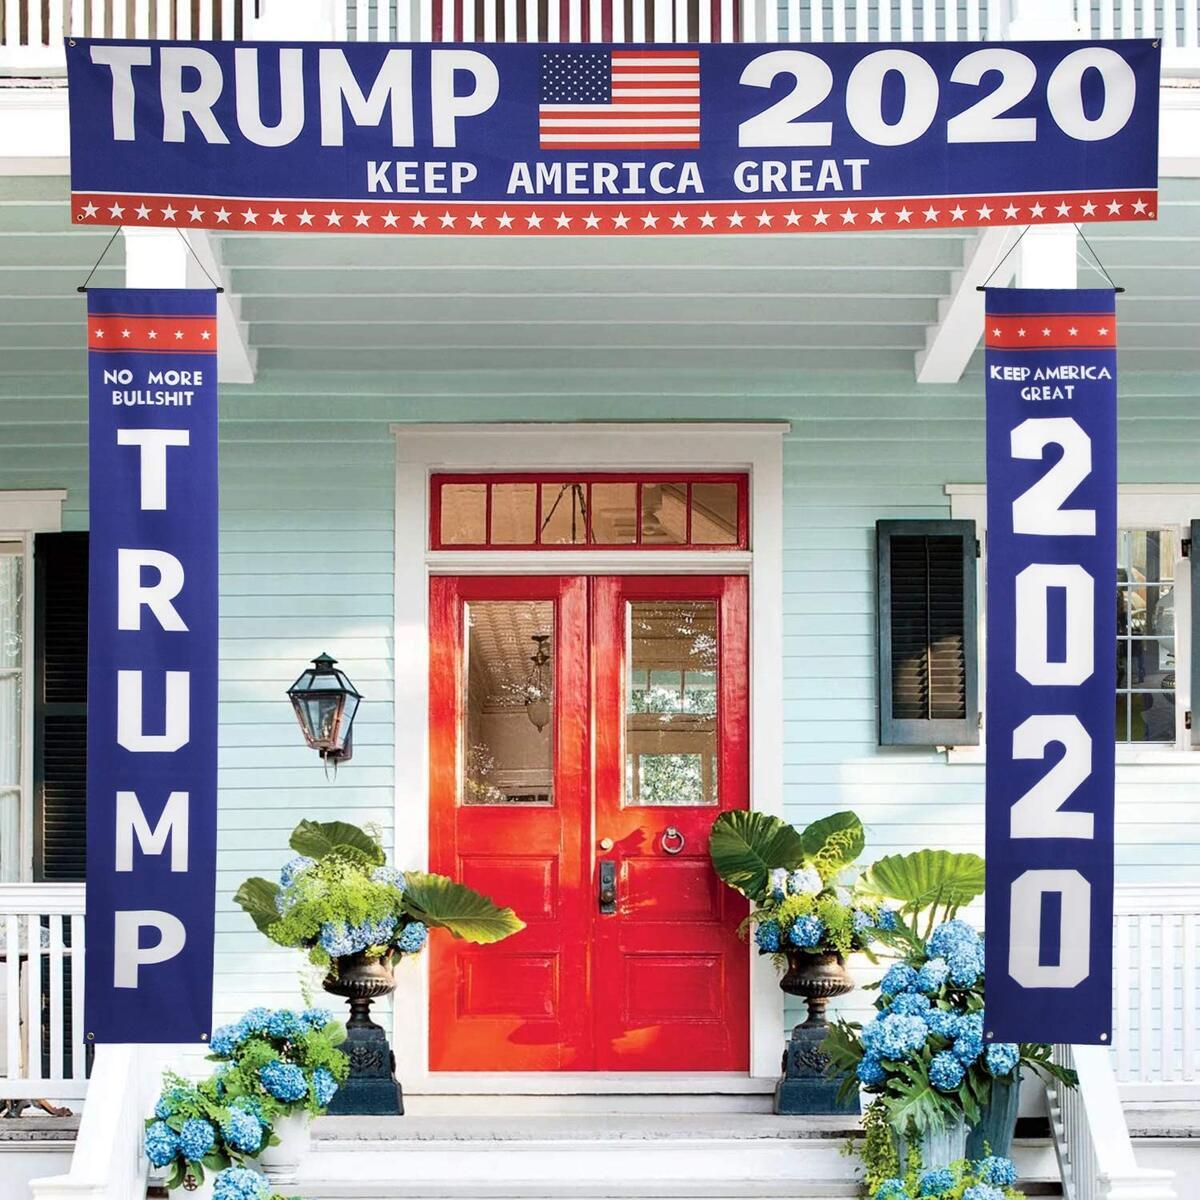 KENPMA Large Trump 2020 Yard Sign and Banner Outdoor Decorations - Keep America Great No More Bull Hanging Banner - Lawn Sign for President Trump 2020 Front Porch Sign - Outdoor, Indoor Décor